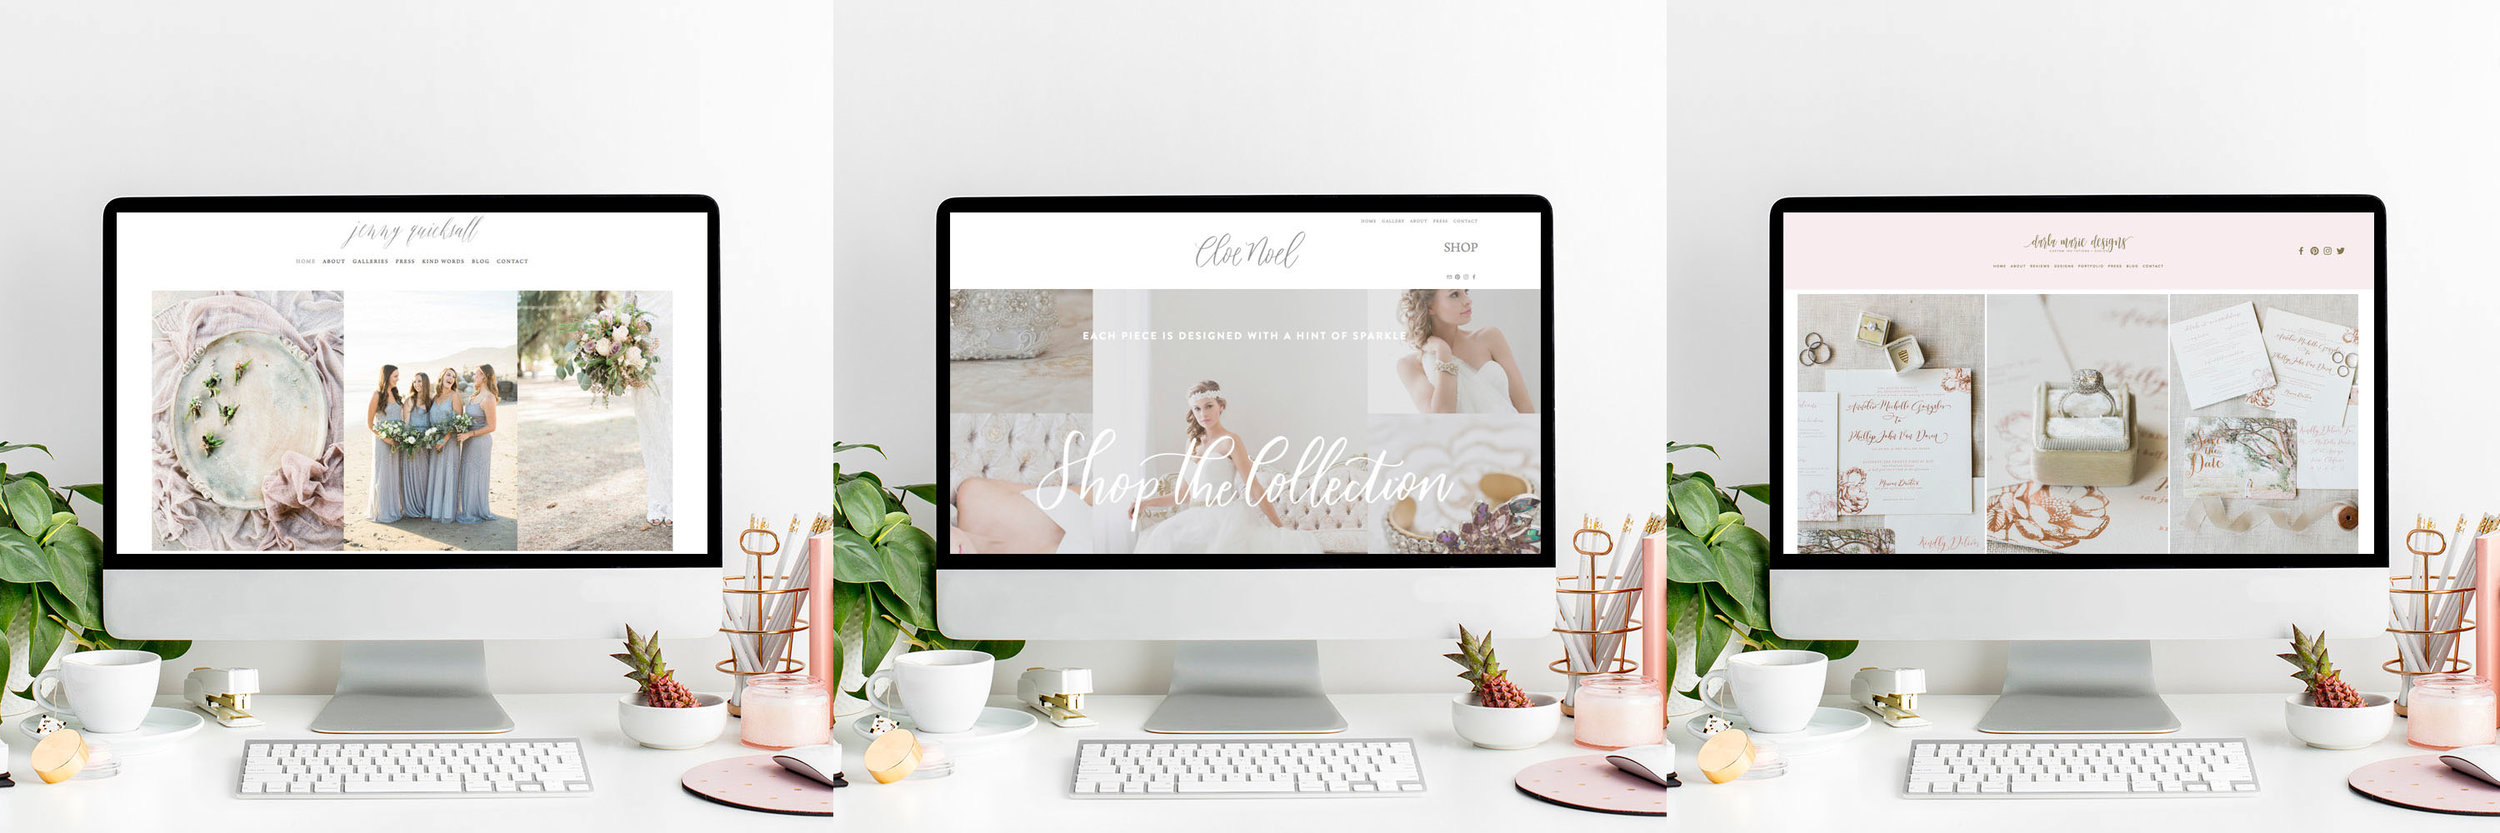 Website Designer for Wedding Professionals and Creatives | The Editor's Touch